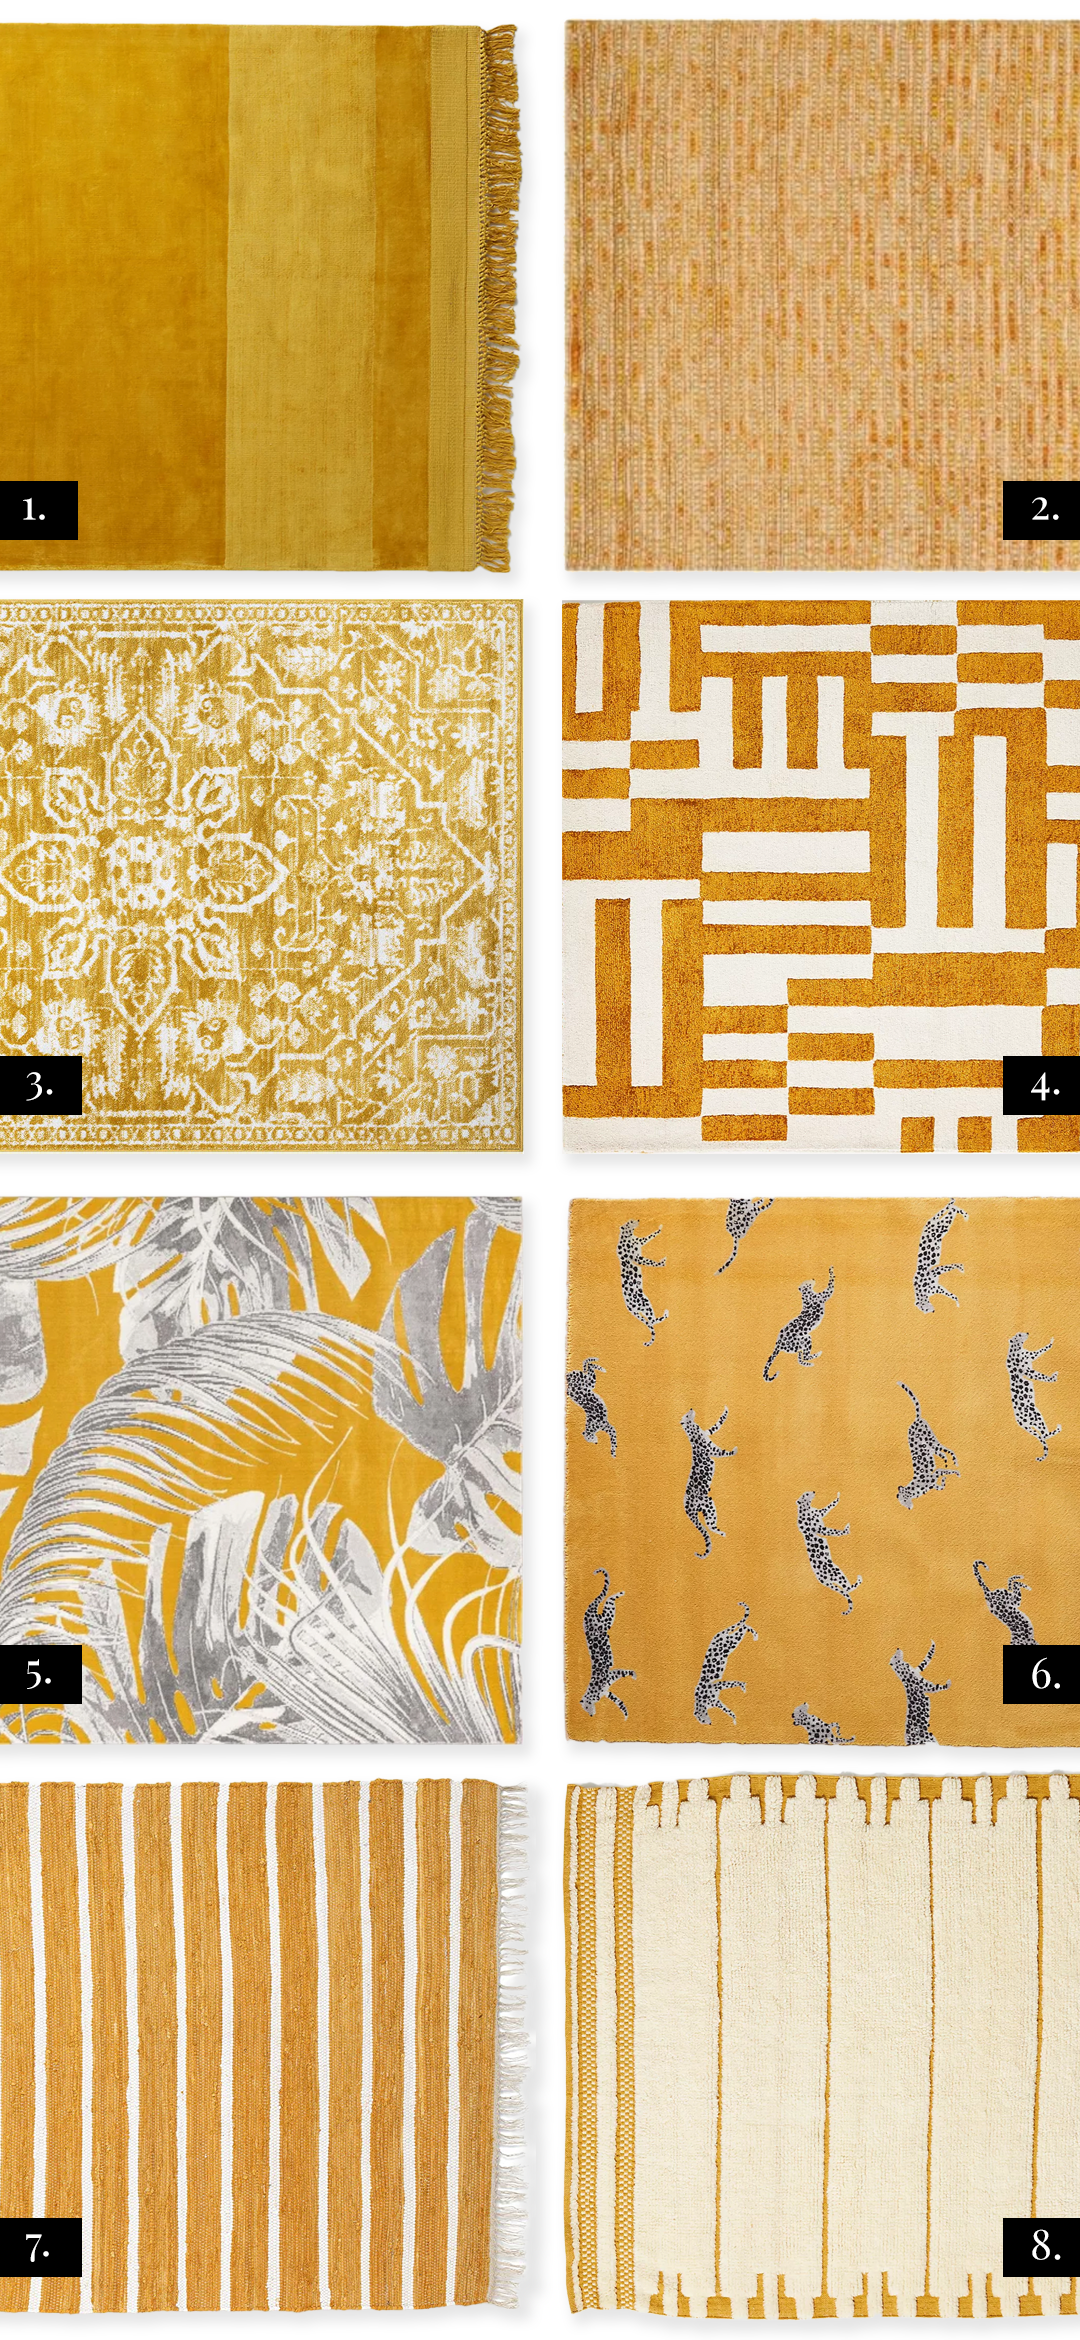 16 Modern Mustard Colored Area Rugs That Ooze Style - Pursuit Decor - feat. rugs from Target, Anthropologie, Home Depot, Wayfair and Amazon #mustard #yellow #arearugs #homedecor